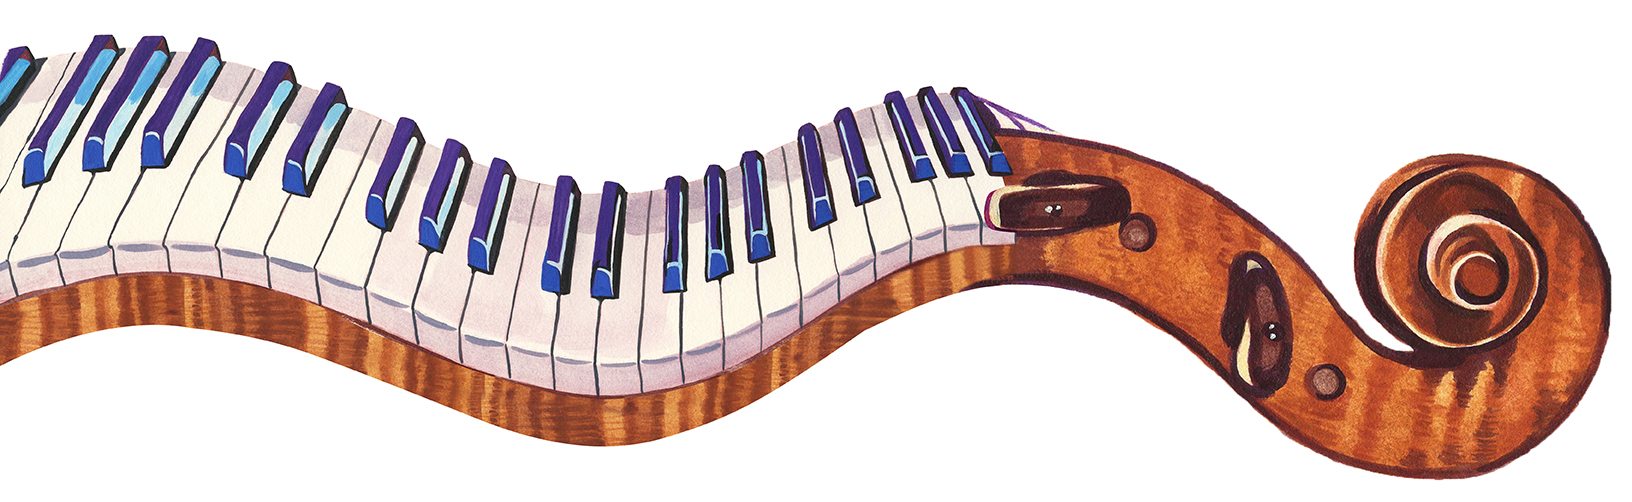 PianoViolinCollaboration72dpi.jpg